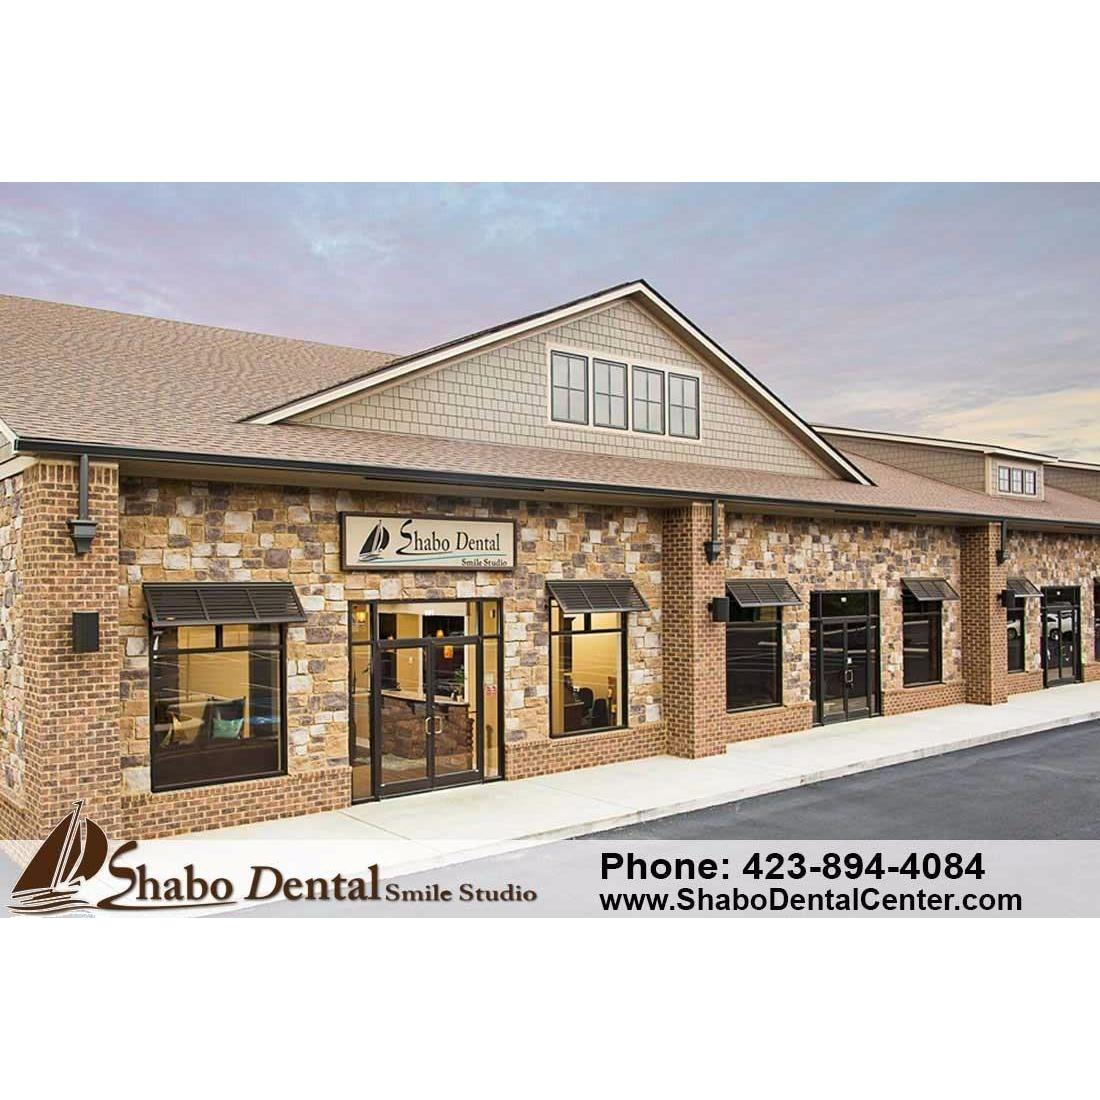 Shabo Dental Smile Studio